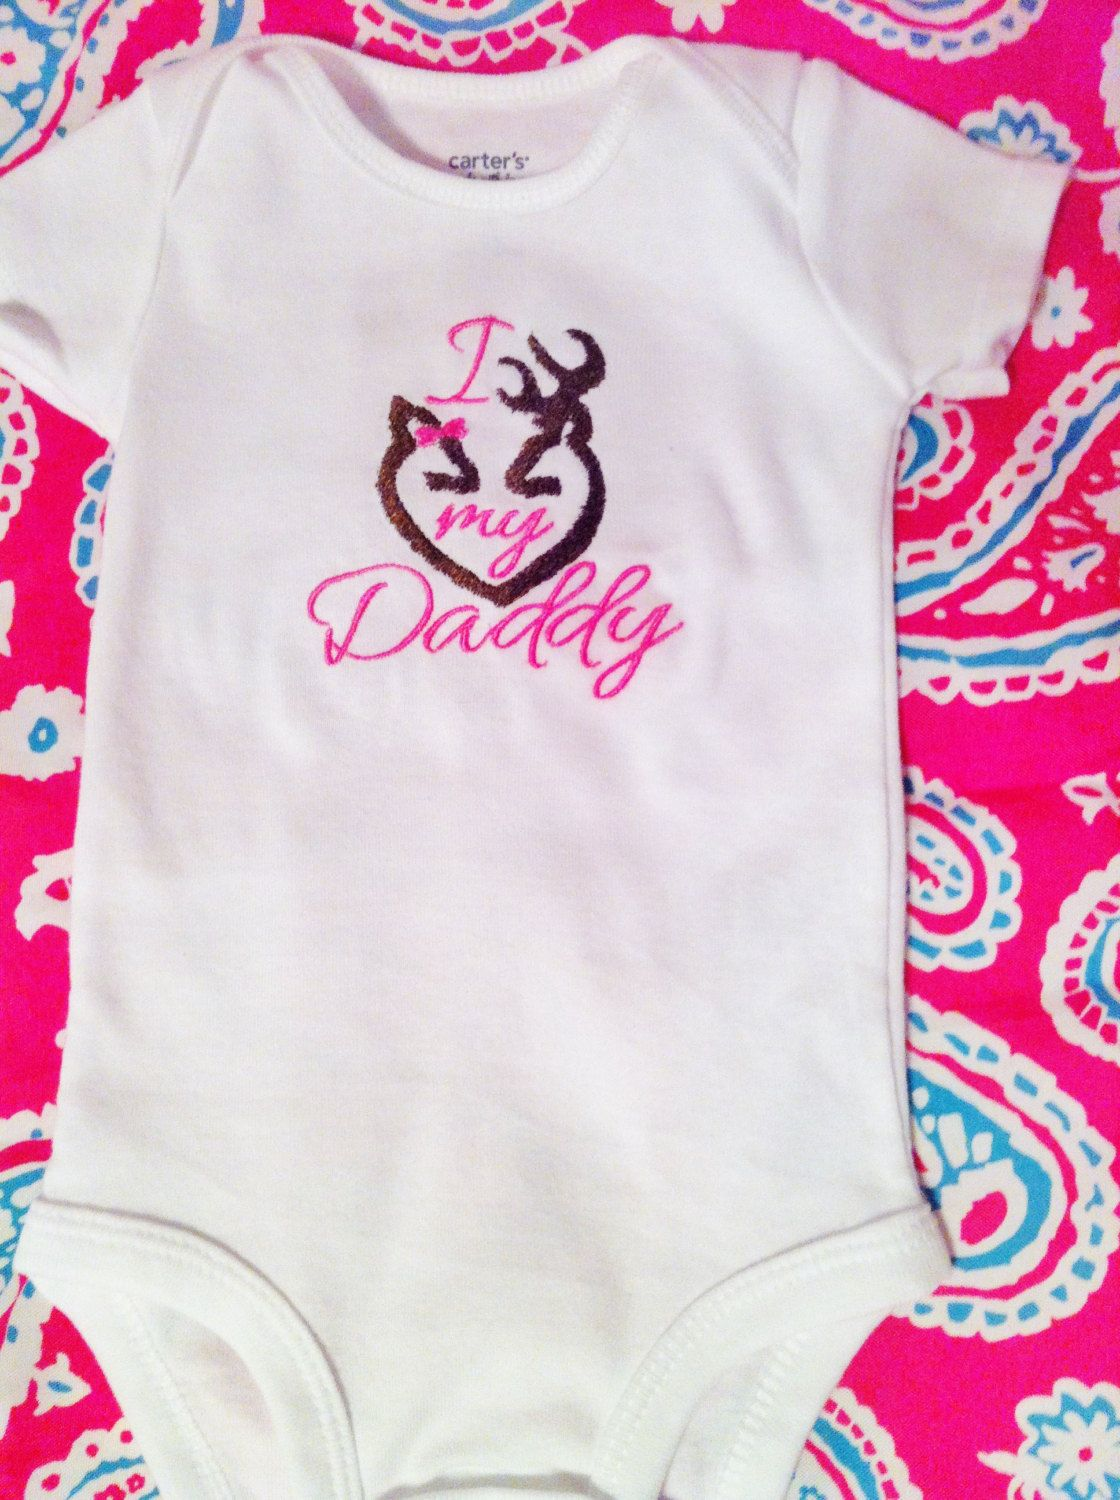 Embroidered onesie i love my daddy browning symbol heart 1400 embroidered onesie i love my daddy browning symbol heart 1400 via etsy biocorpaavc